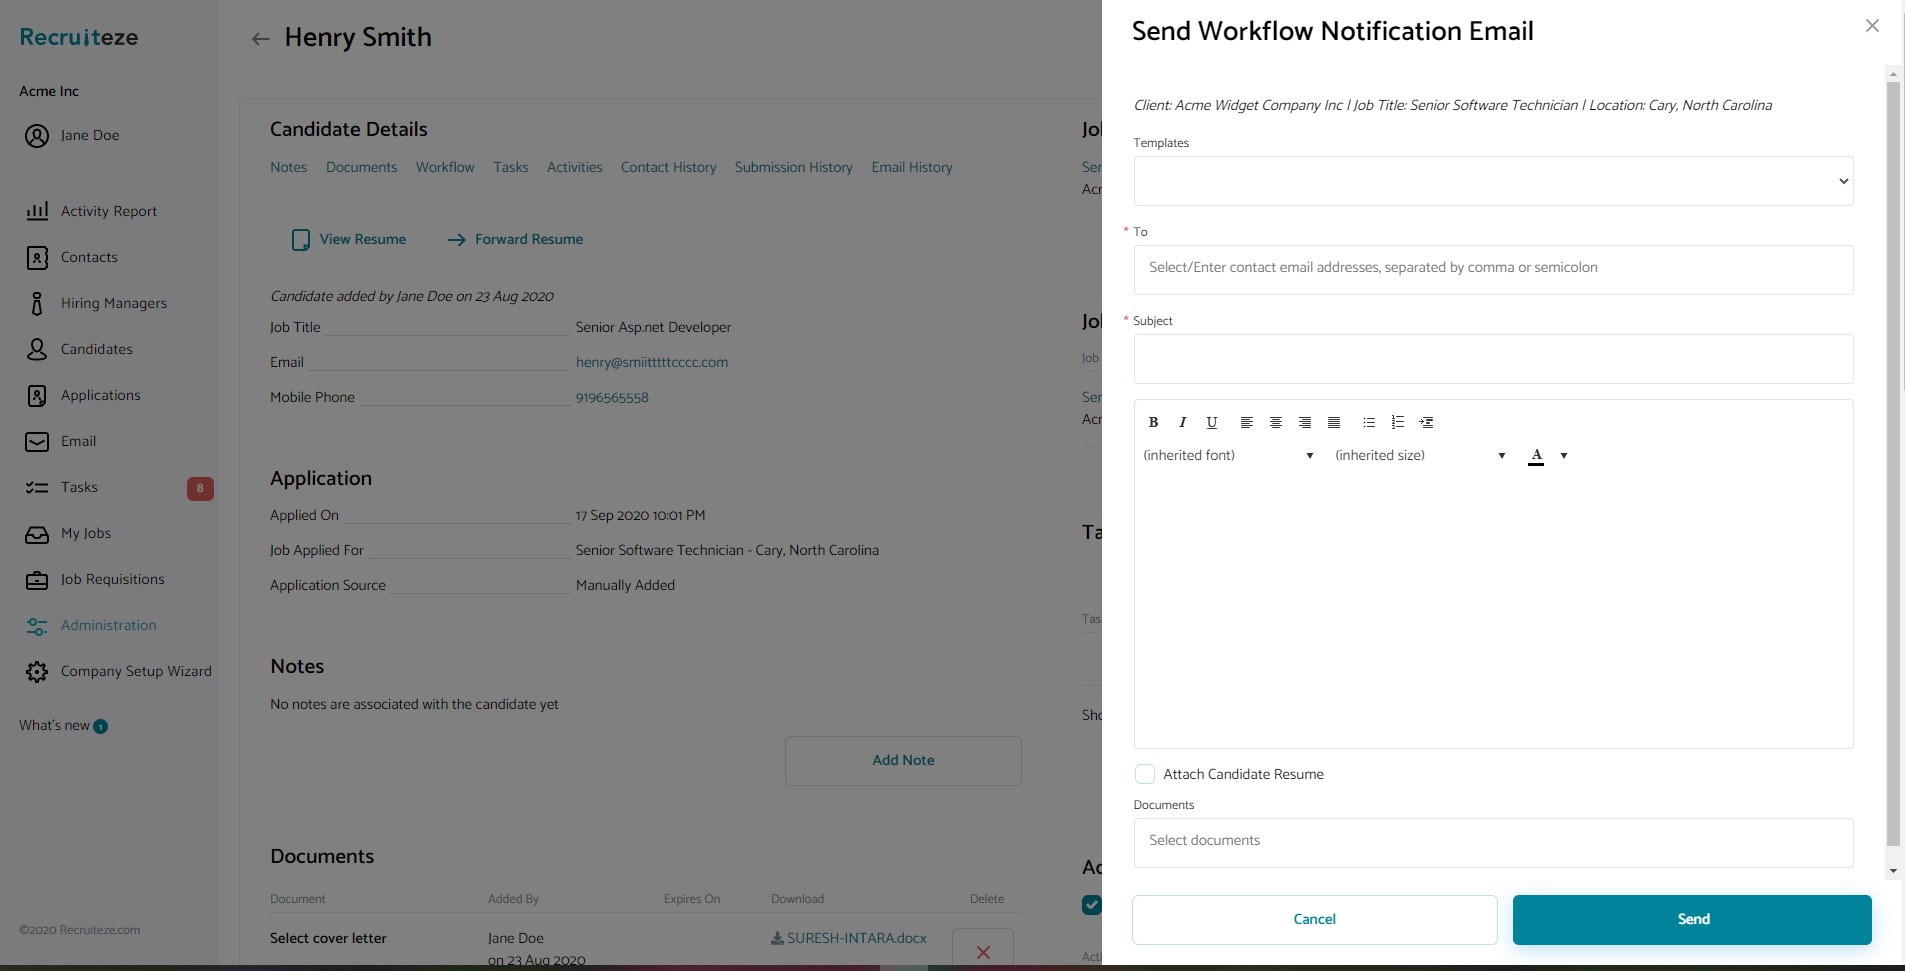 Candidate Management System: Workflow Notification Email